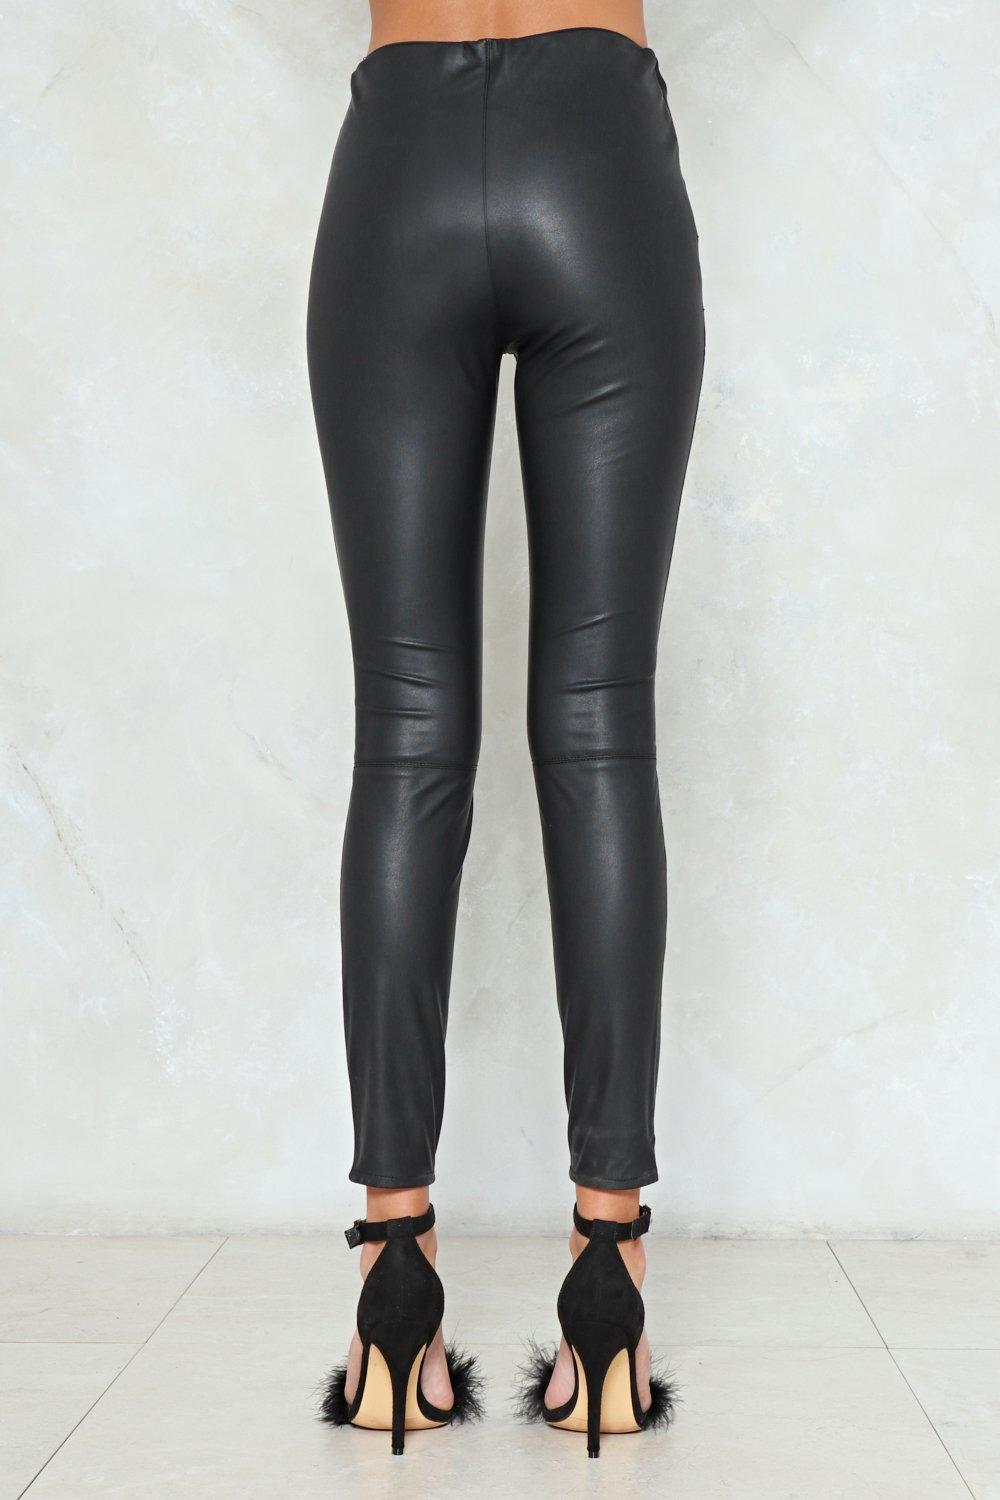 d400fd0f25d7 So Close Faux Leather Leggings   Shop Clothes at Nasty Gal!